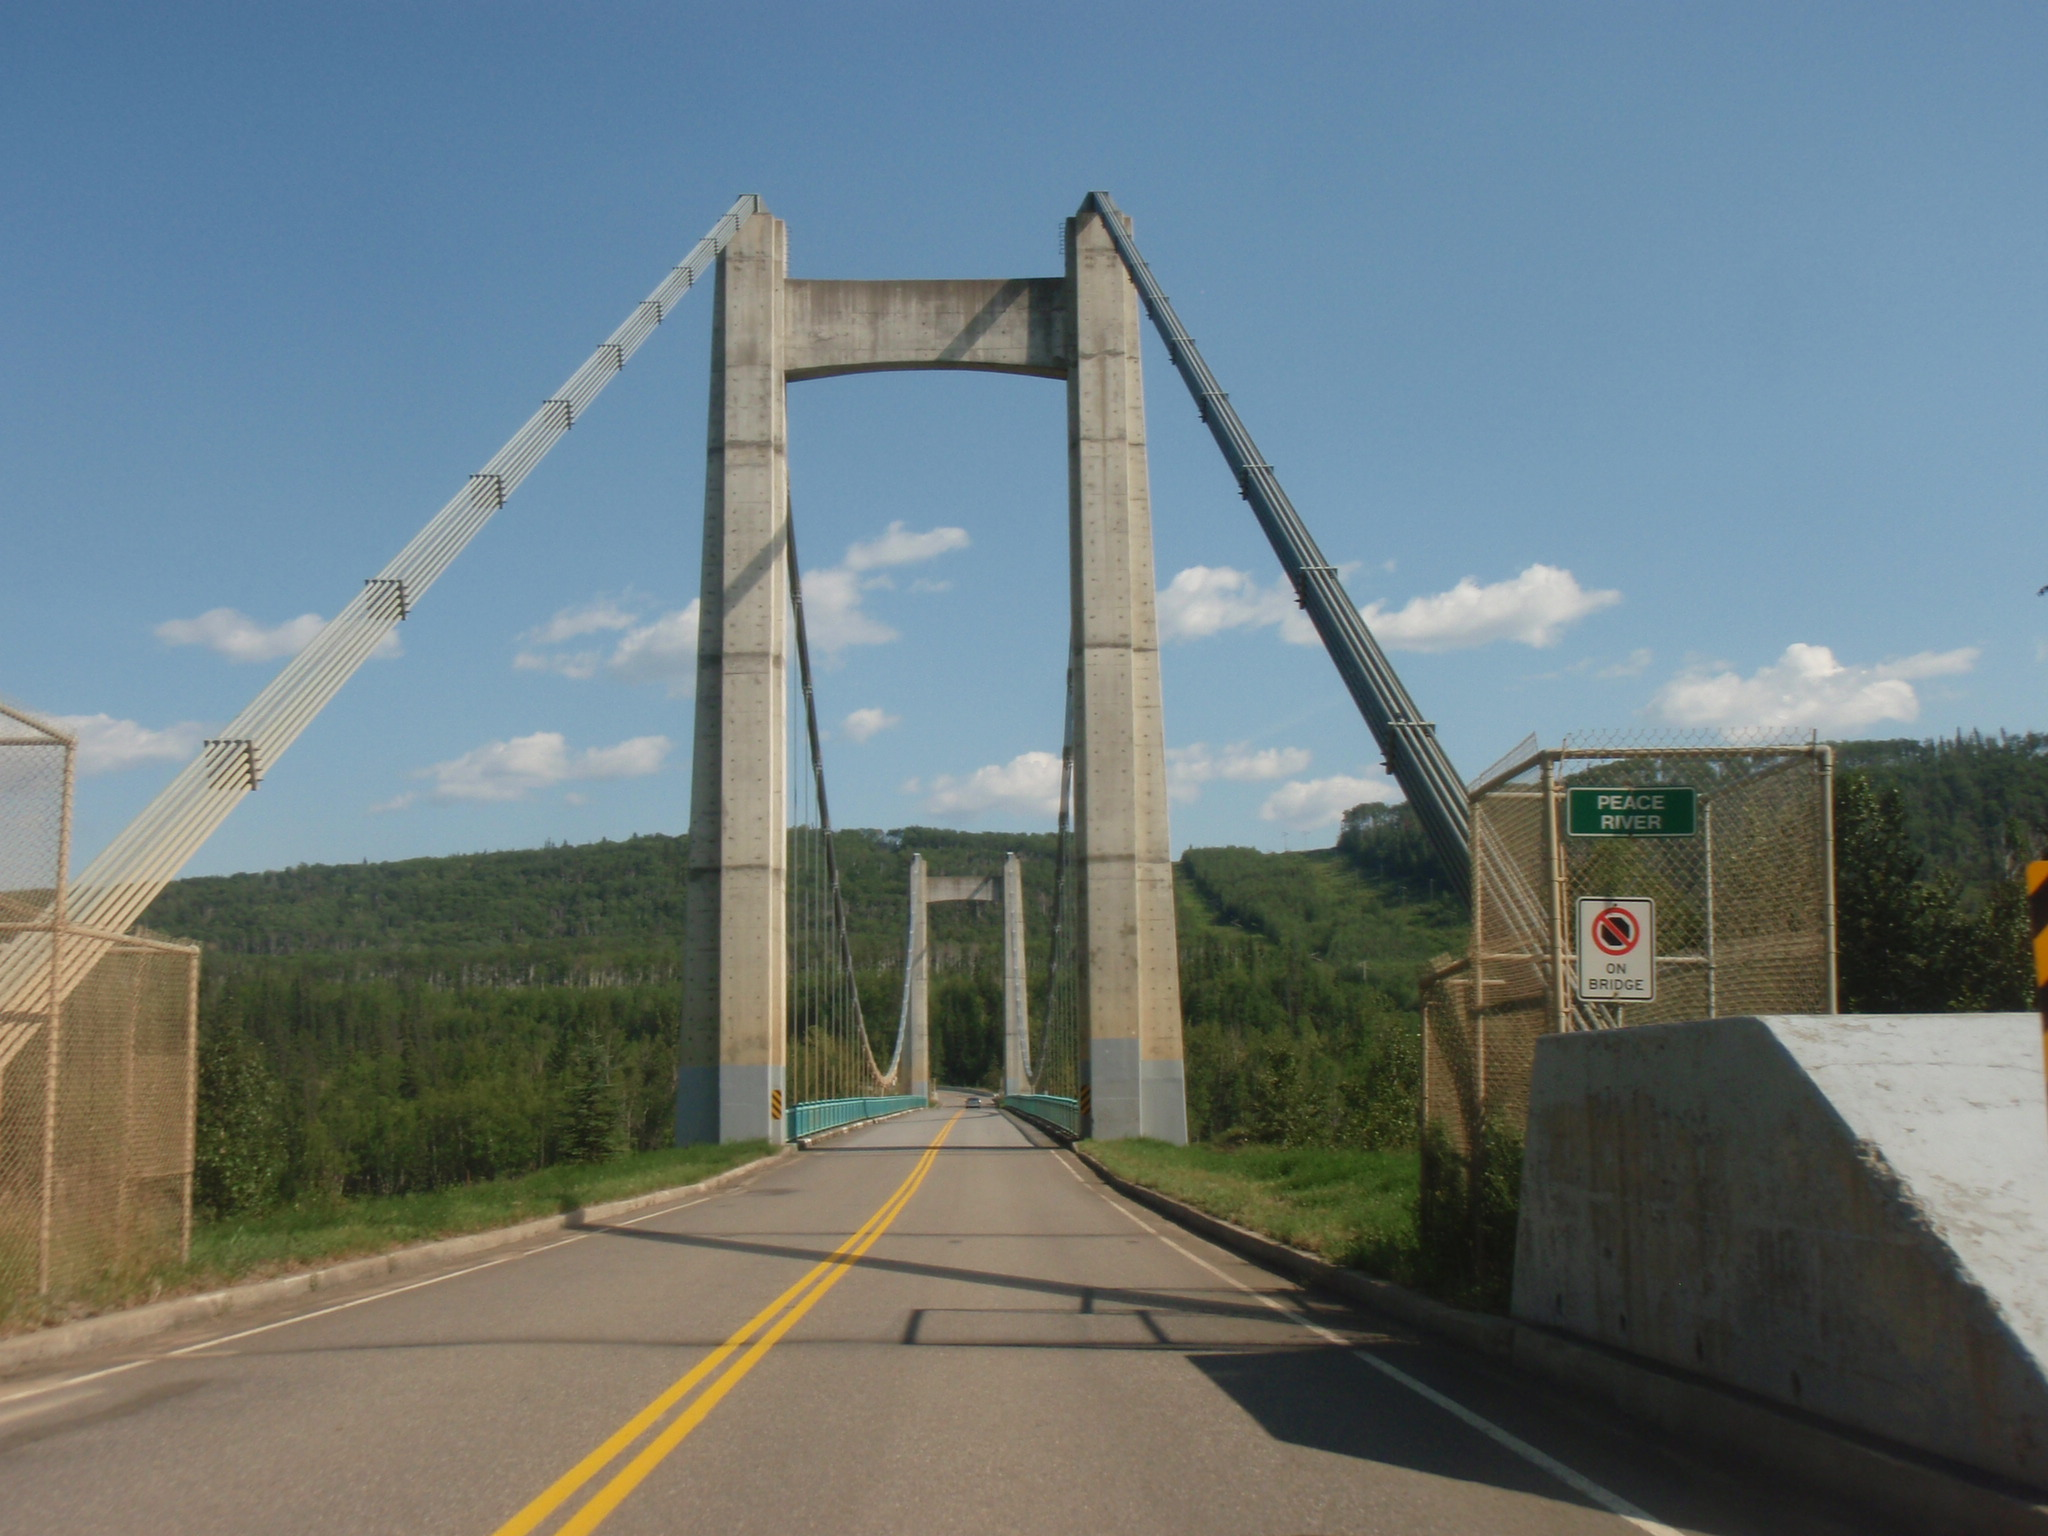 Peace River bridge at Dinosaur Lake dam